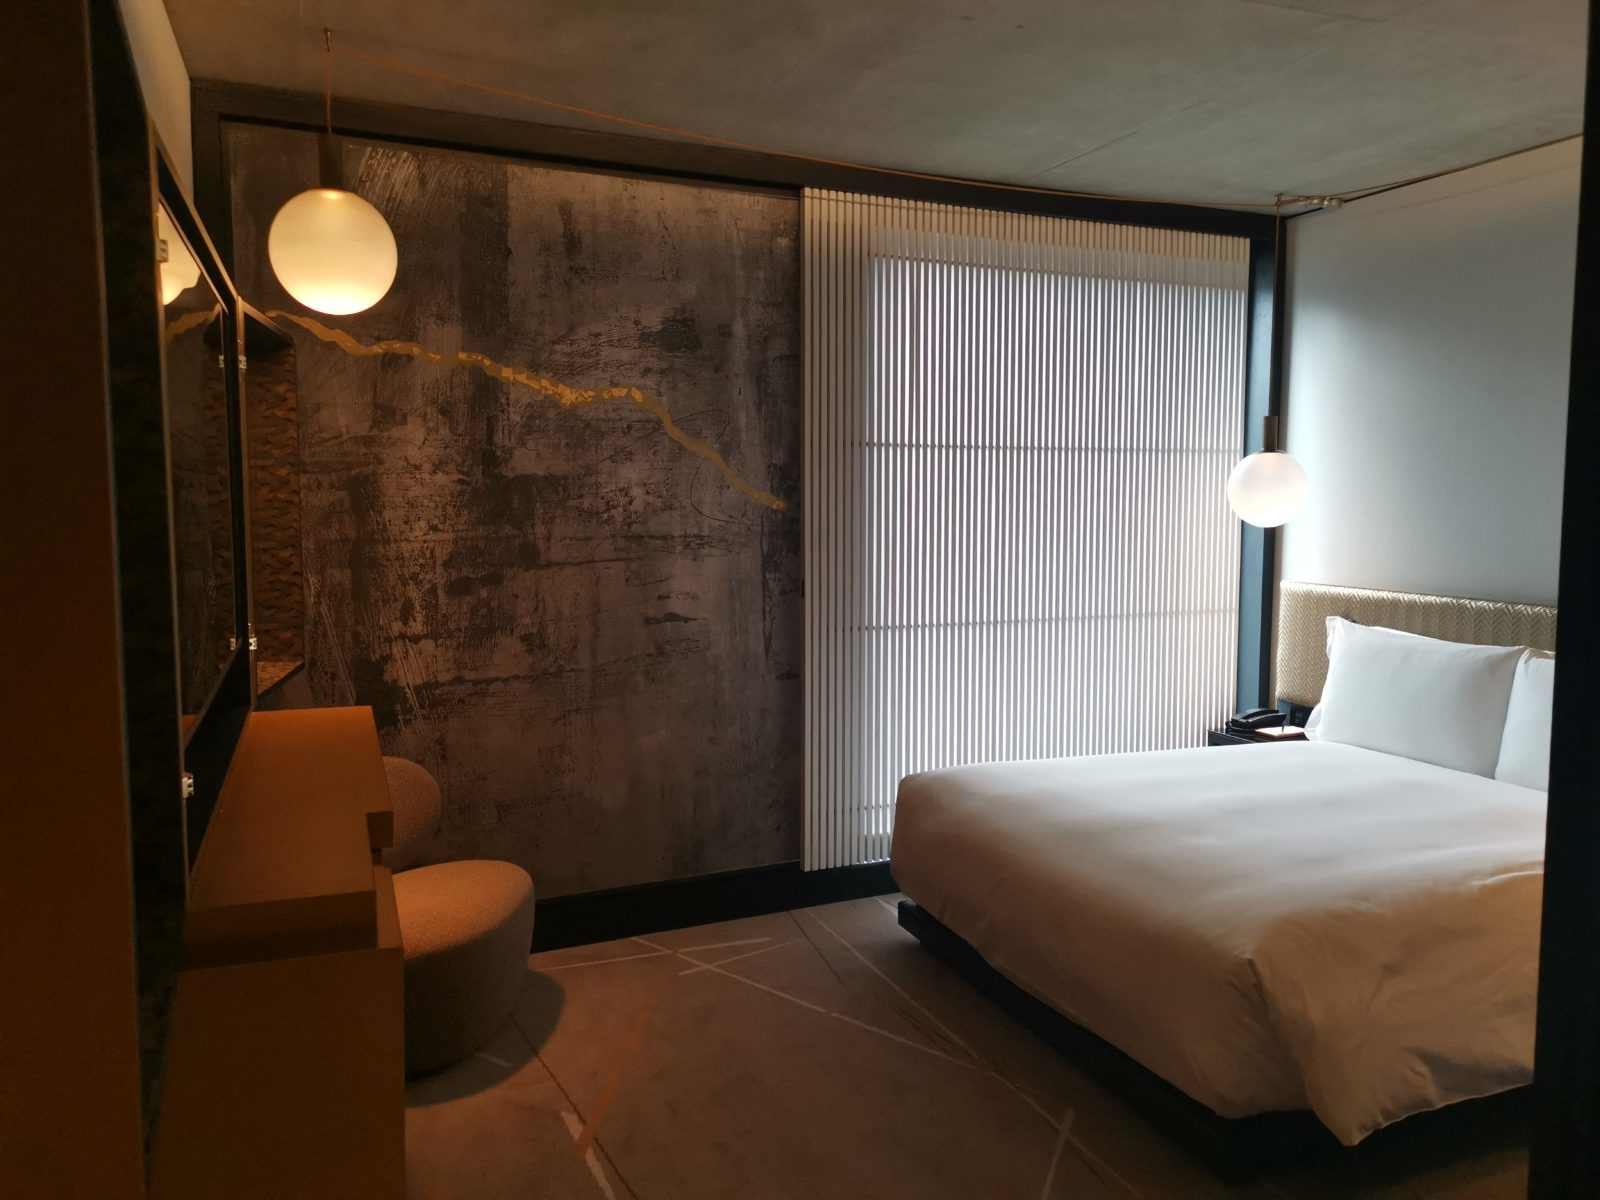 Bedroom at Nobu Shoreditch Hotel